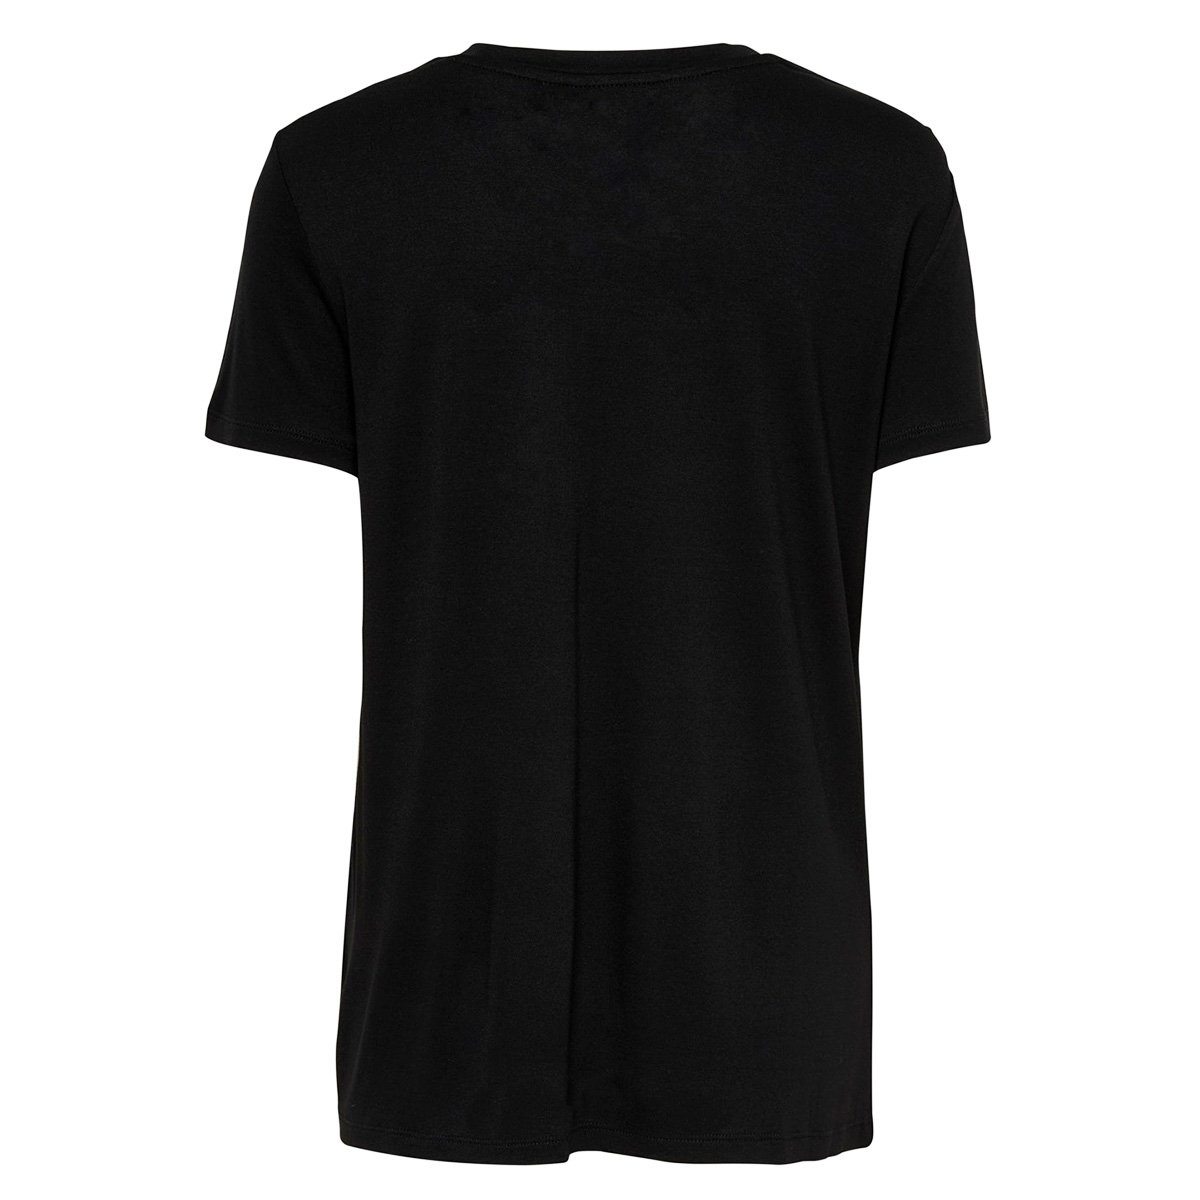 onlclementine s/s tee jrs 15204715 only t-shirt black/ rule maker